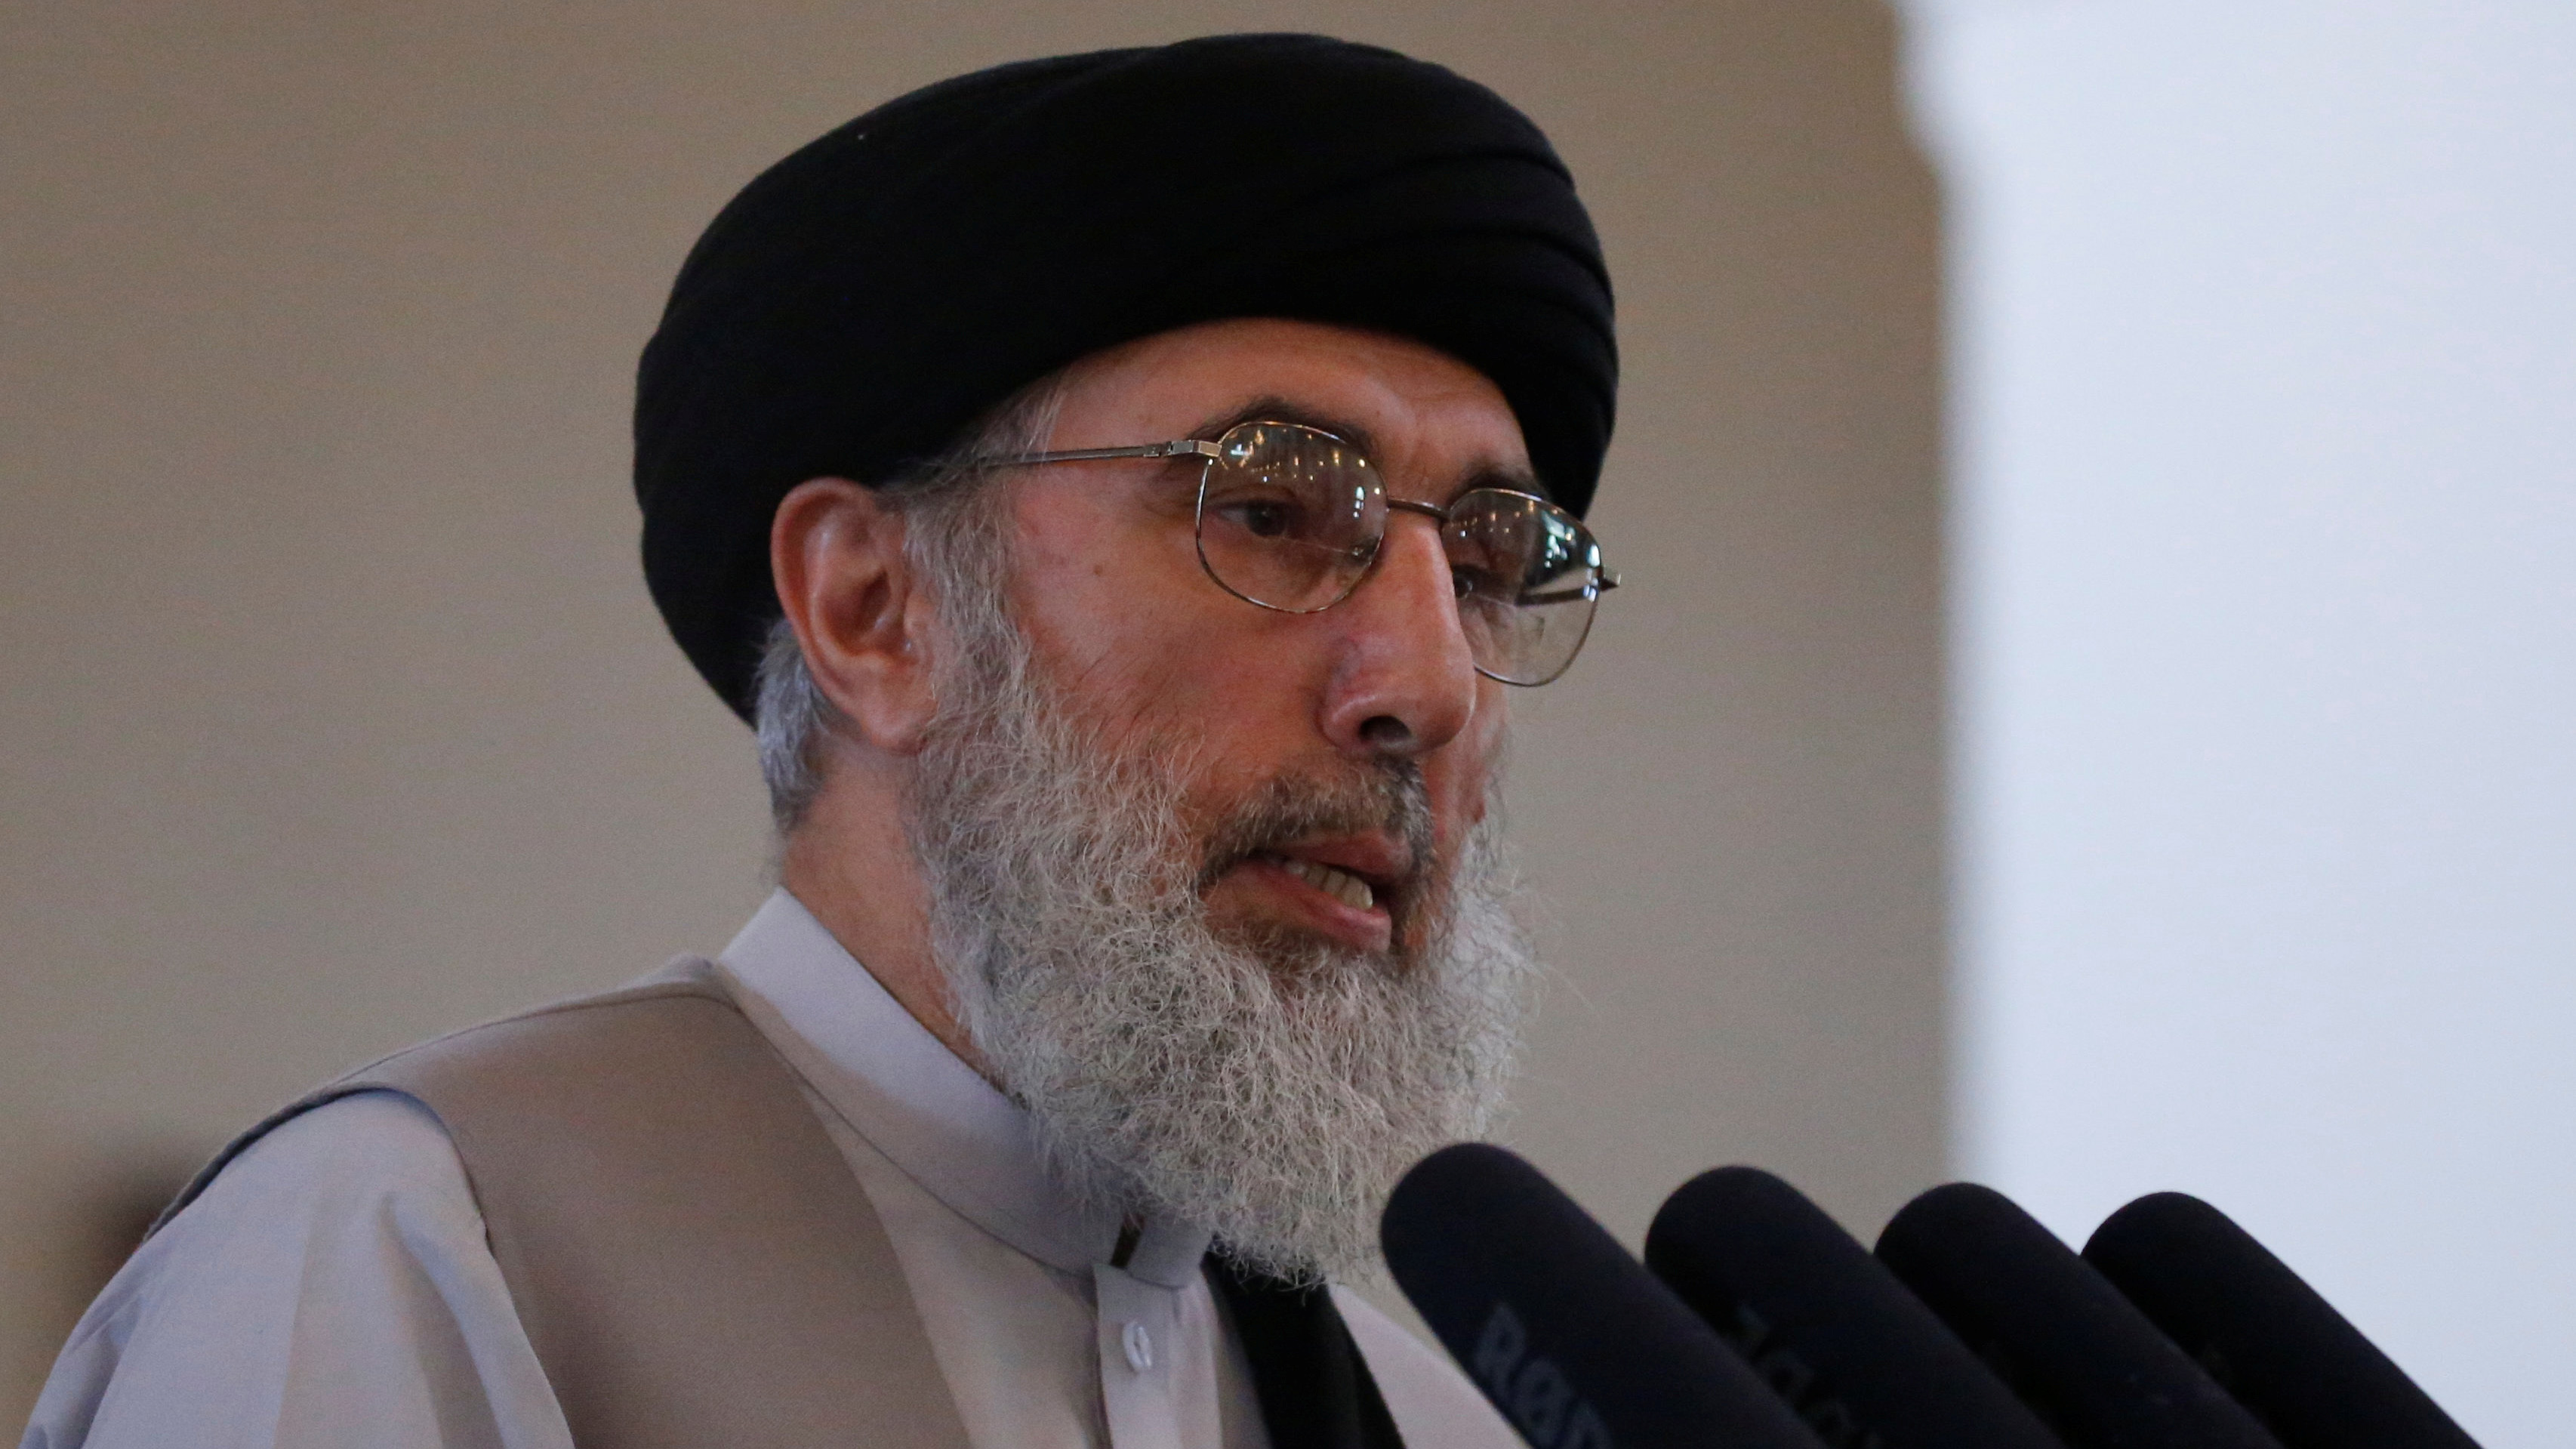 Afghan warlord Gulbuddin Hekmatyar speaks during a welcoming ceremony at the presidential palace in Kabul, Afghanistan May 4th, 2017